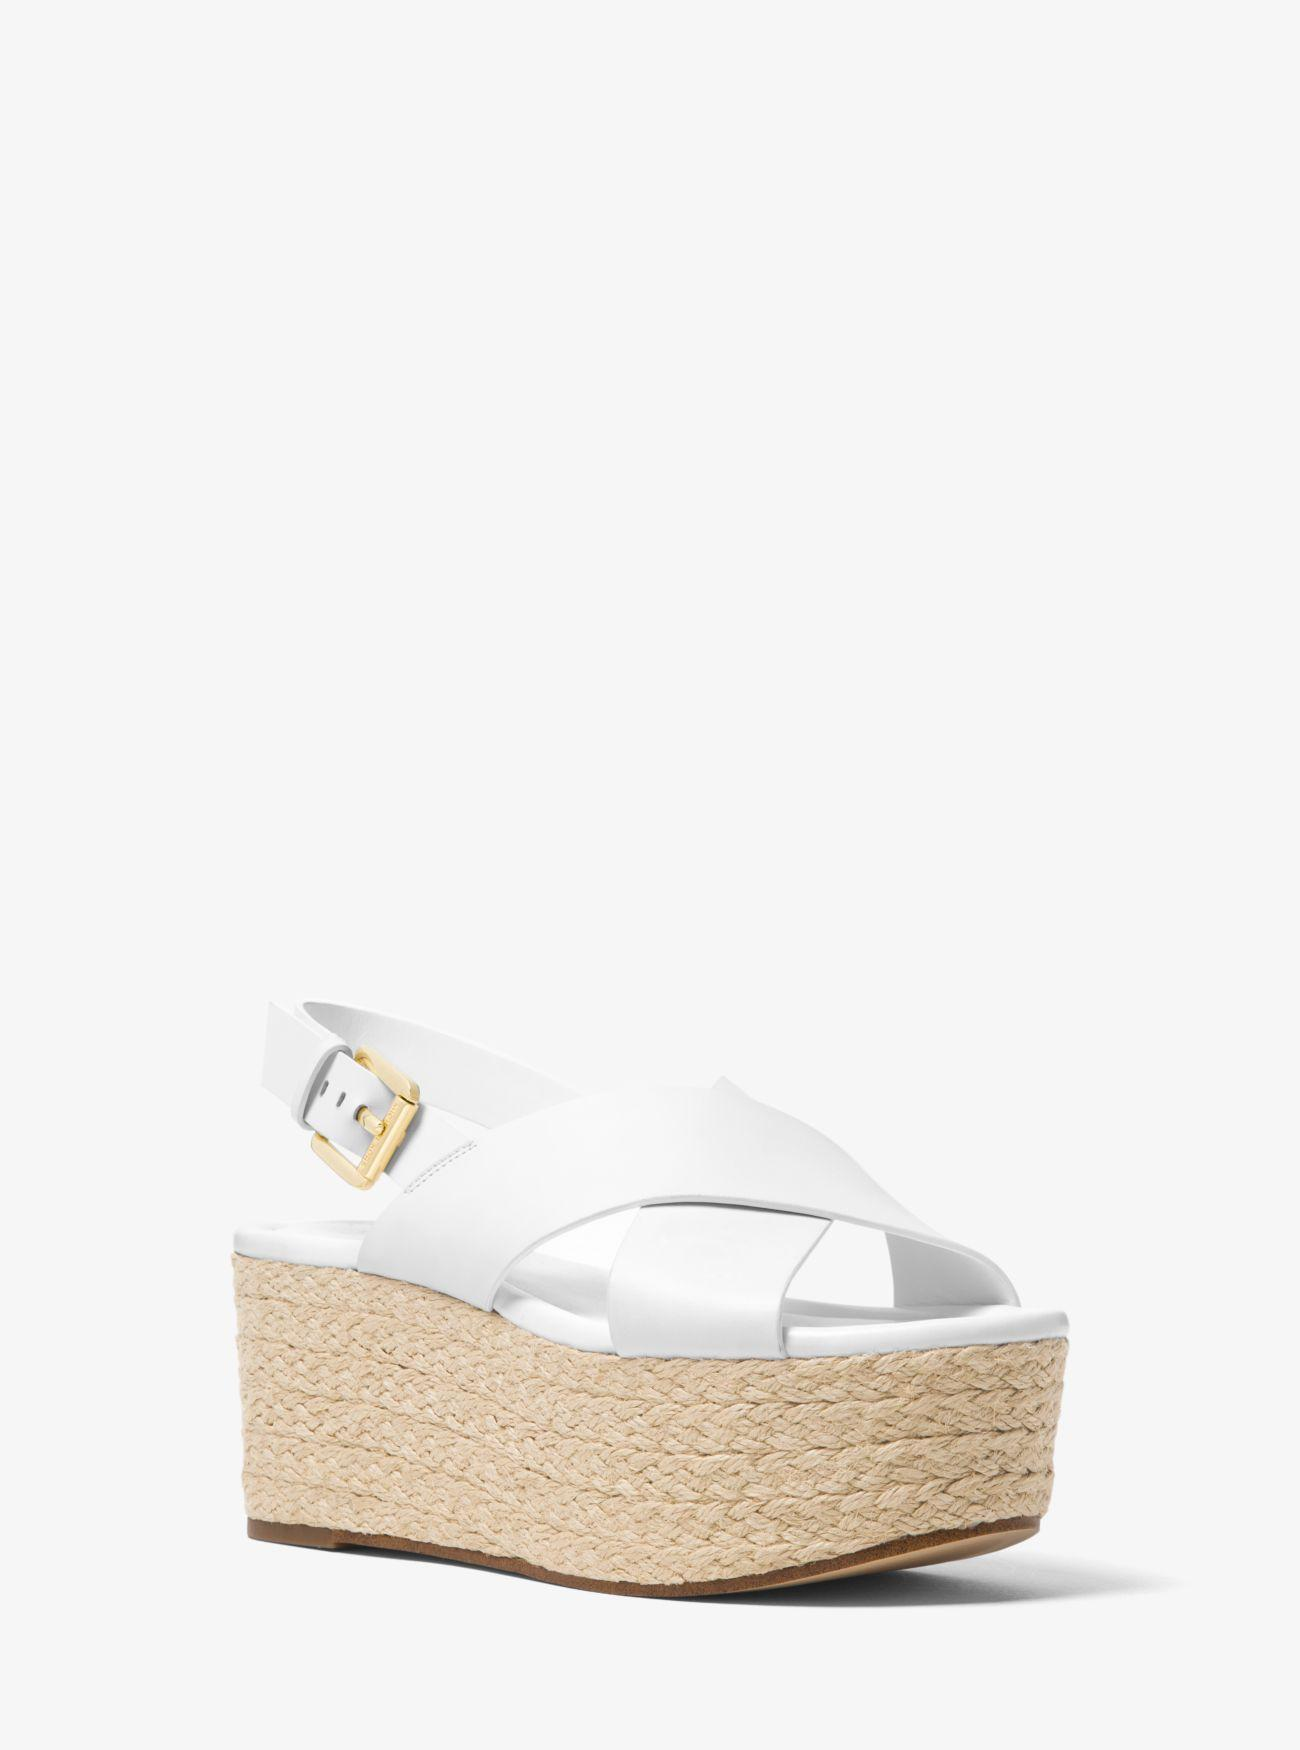 0b076ec7d9a8 Lyst - Michael Kors Jodi Leather Espadrille Wedge in White